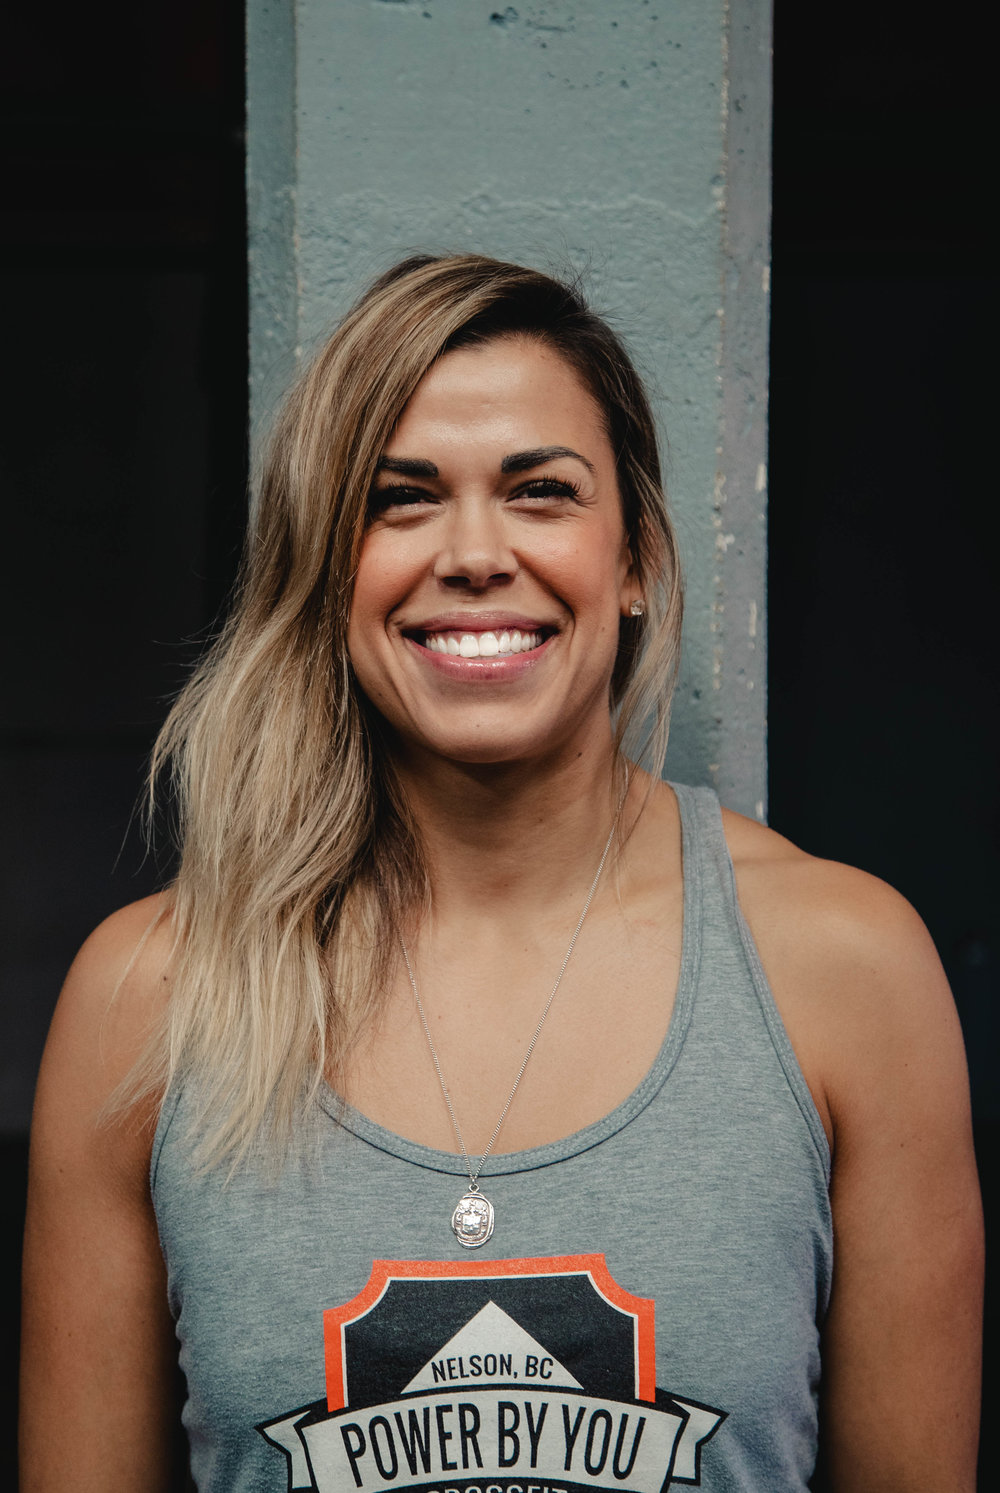 Ali Popoff   Owner // CrossFit Level 2 Coach // Nutritional Consultant